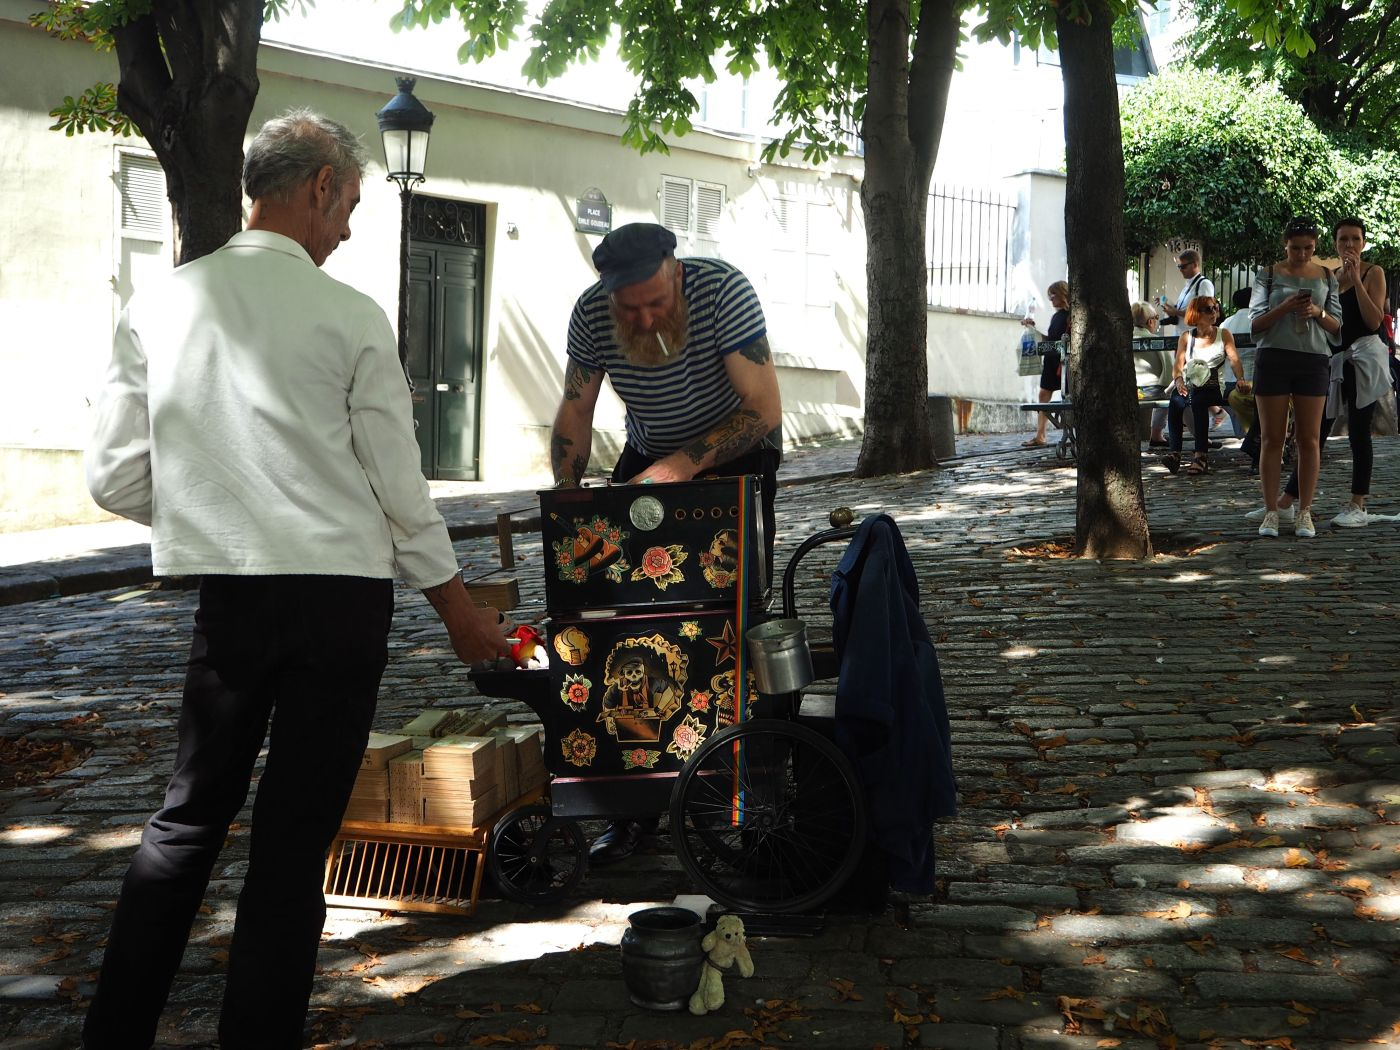 Montmartre barrel organ